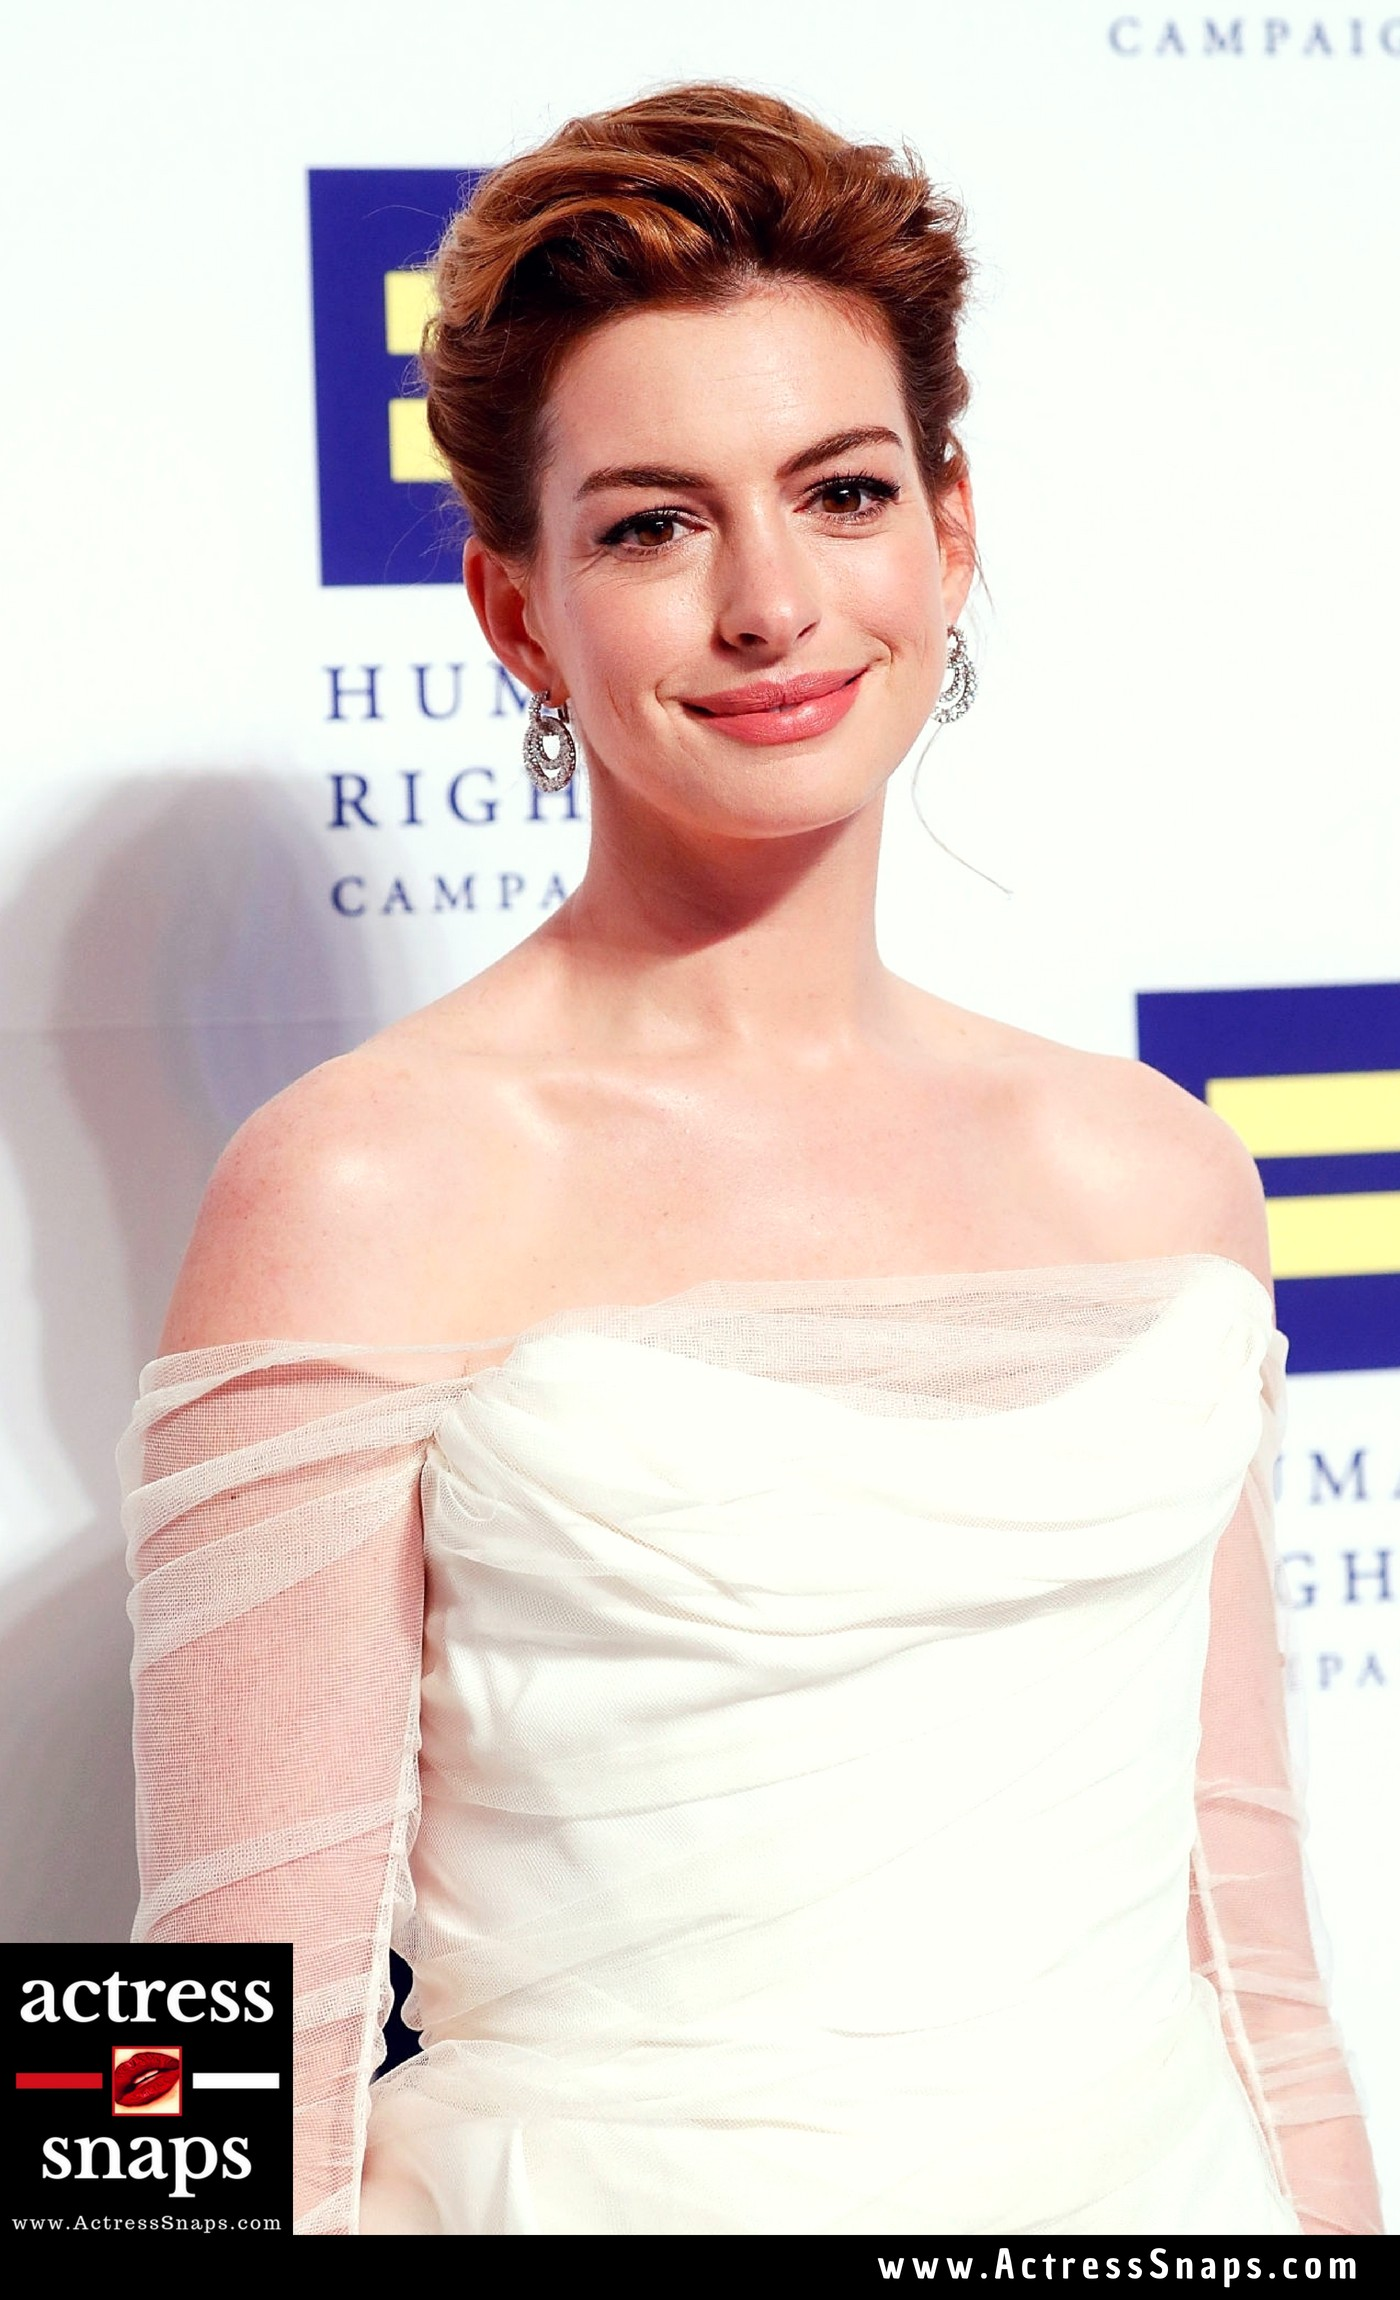 Anne Hathaway - Beautiful in White - Sexy Actress Pictures | Hot Actress Pictures - ActressSnaps.com